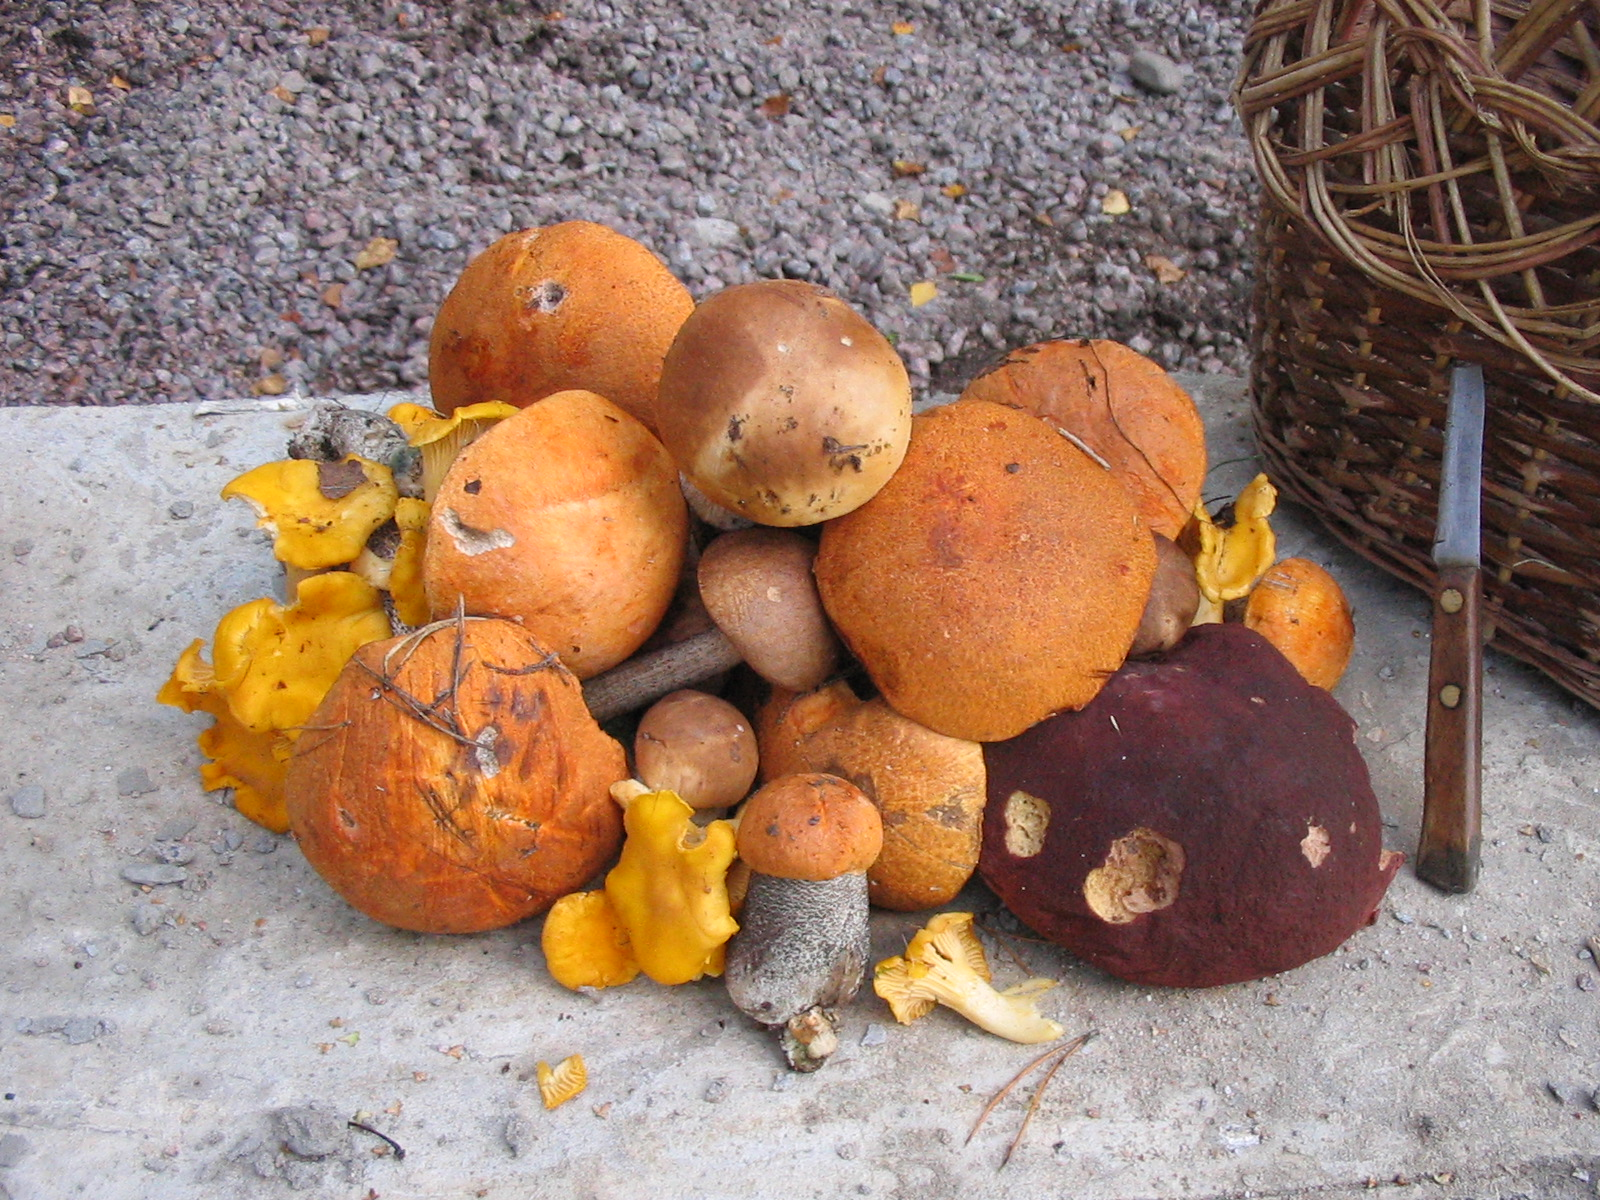 Alabama Edible Mushrooms http://commons.wikimedia.org/wiki/File:Mushrooms.jpg